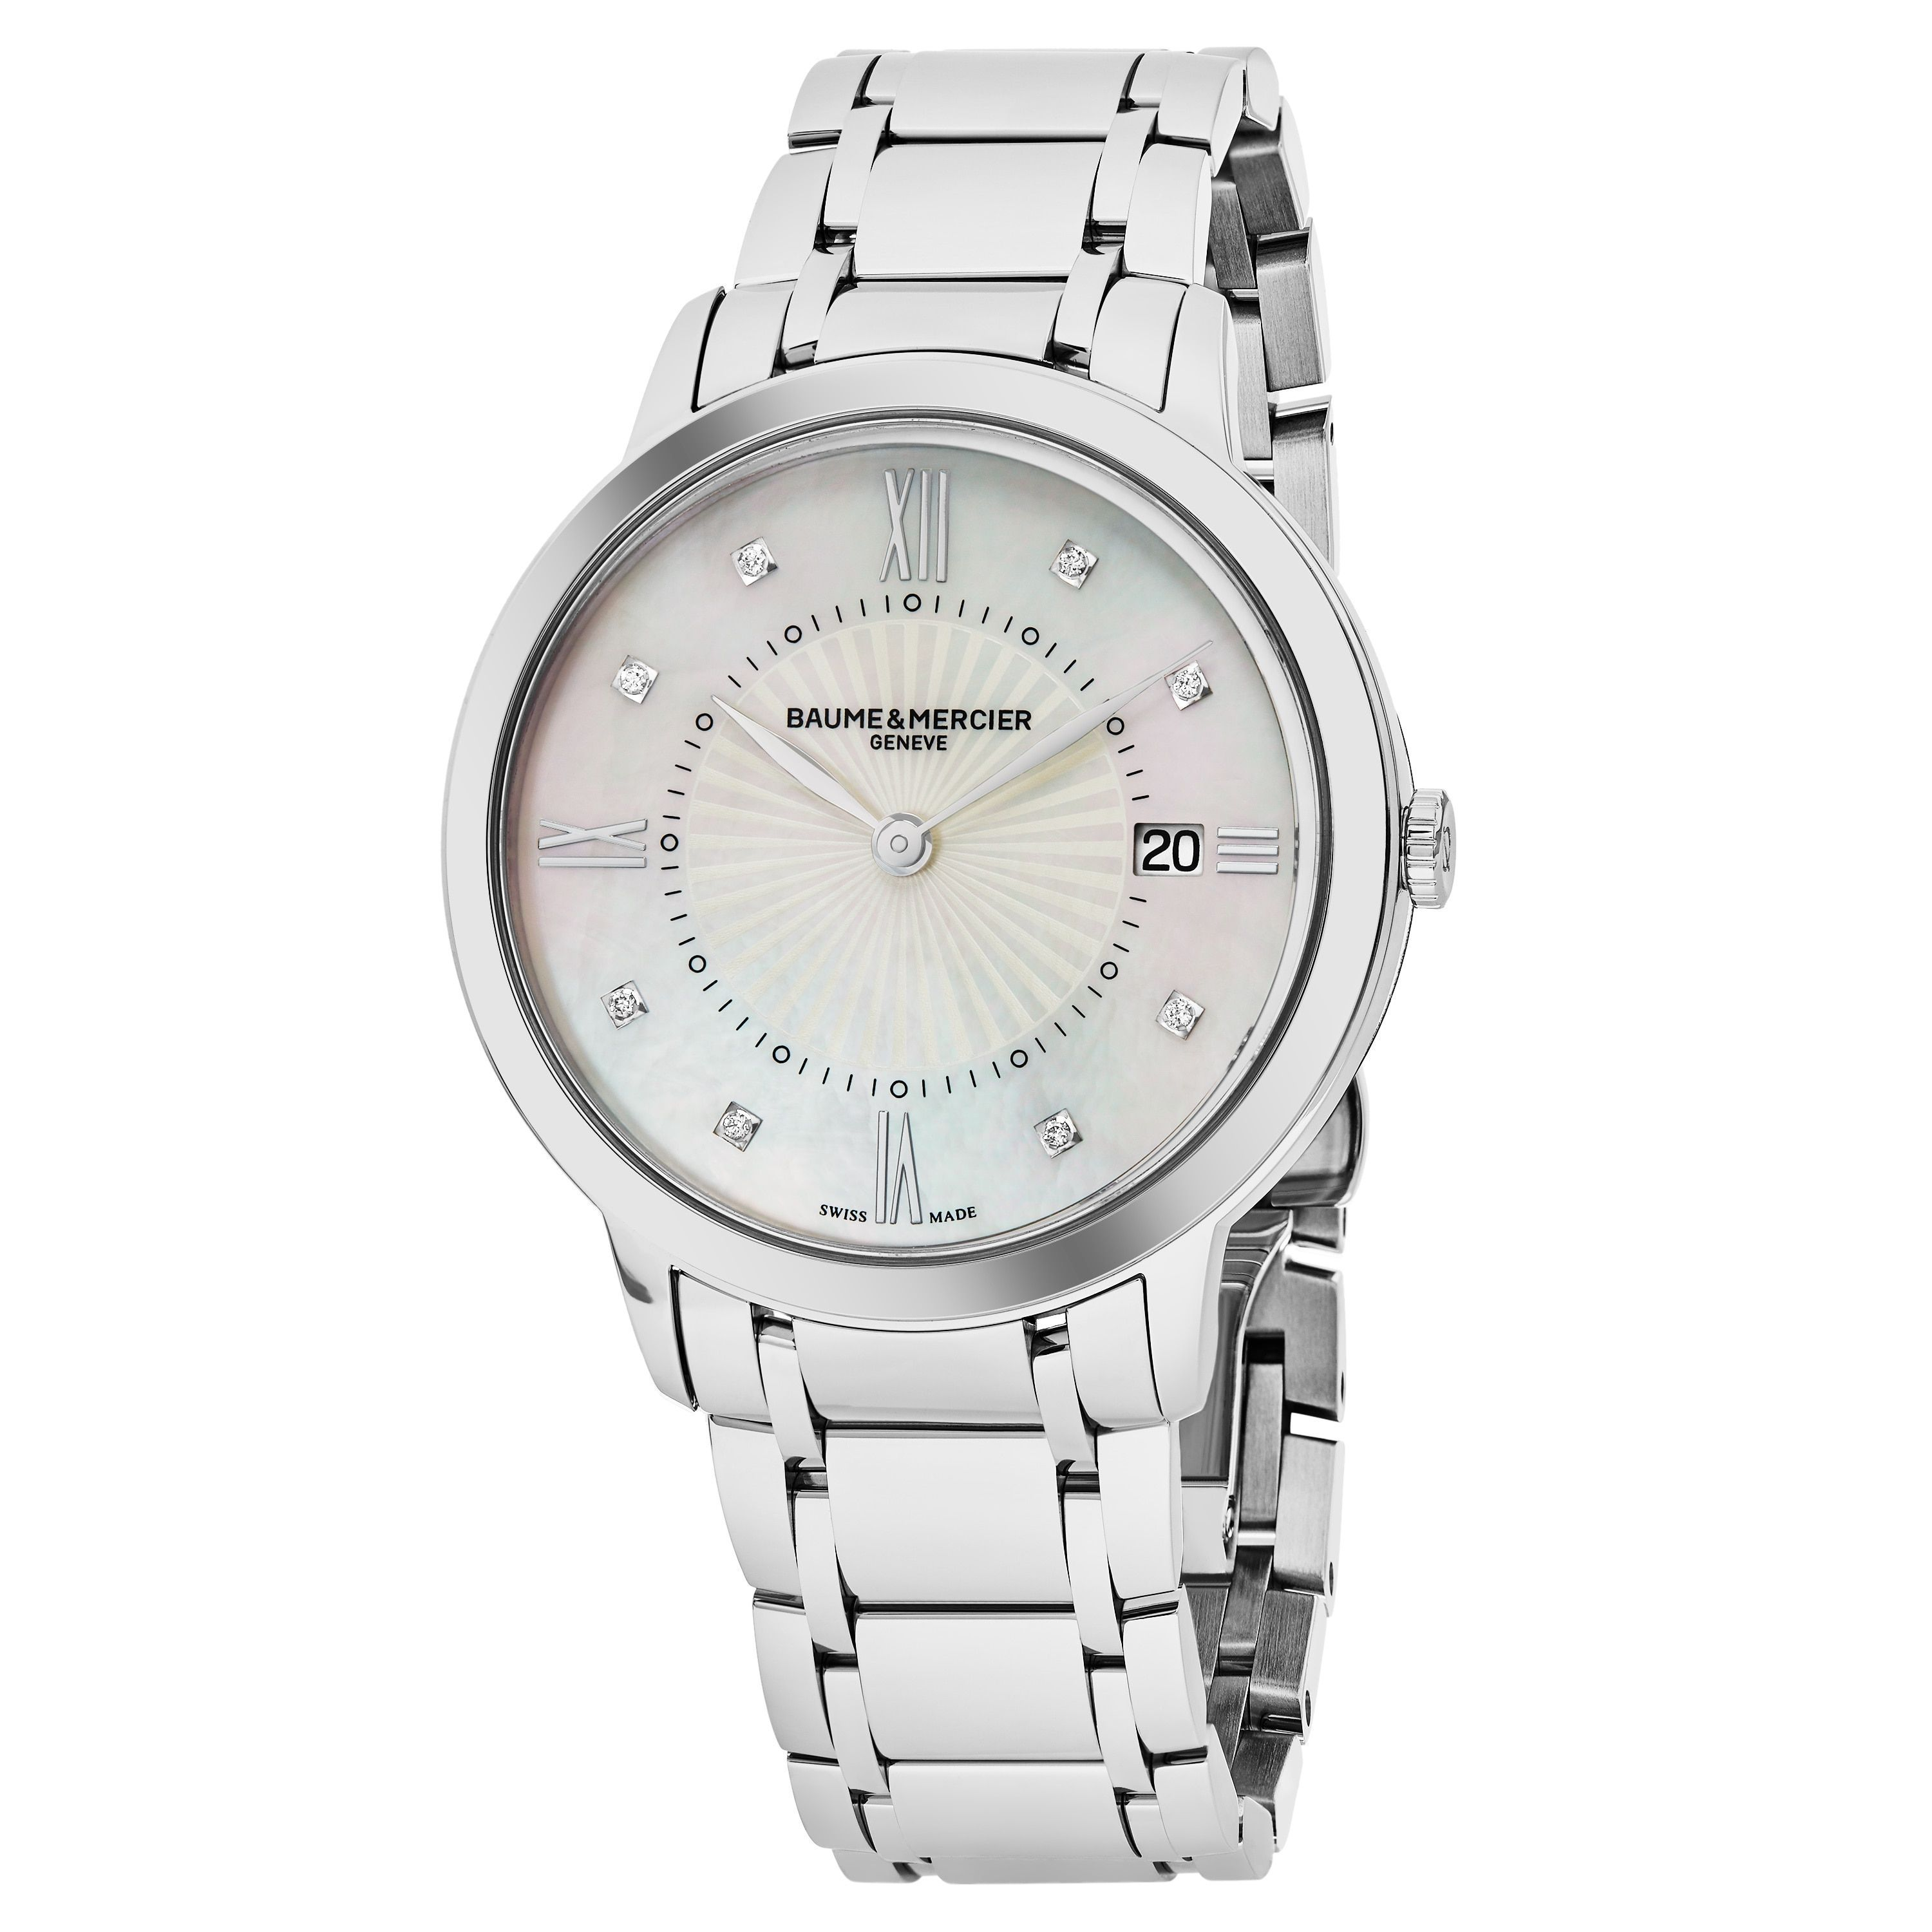 9c88876bc3d45a Baume Mercier Women's MOA10225 'Classima' Dial Swiss Quartz Watch ...